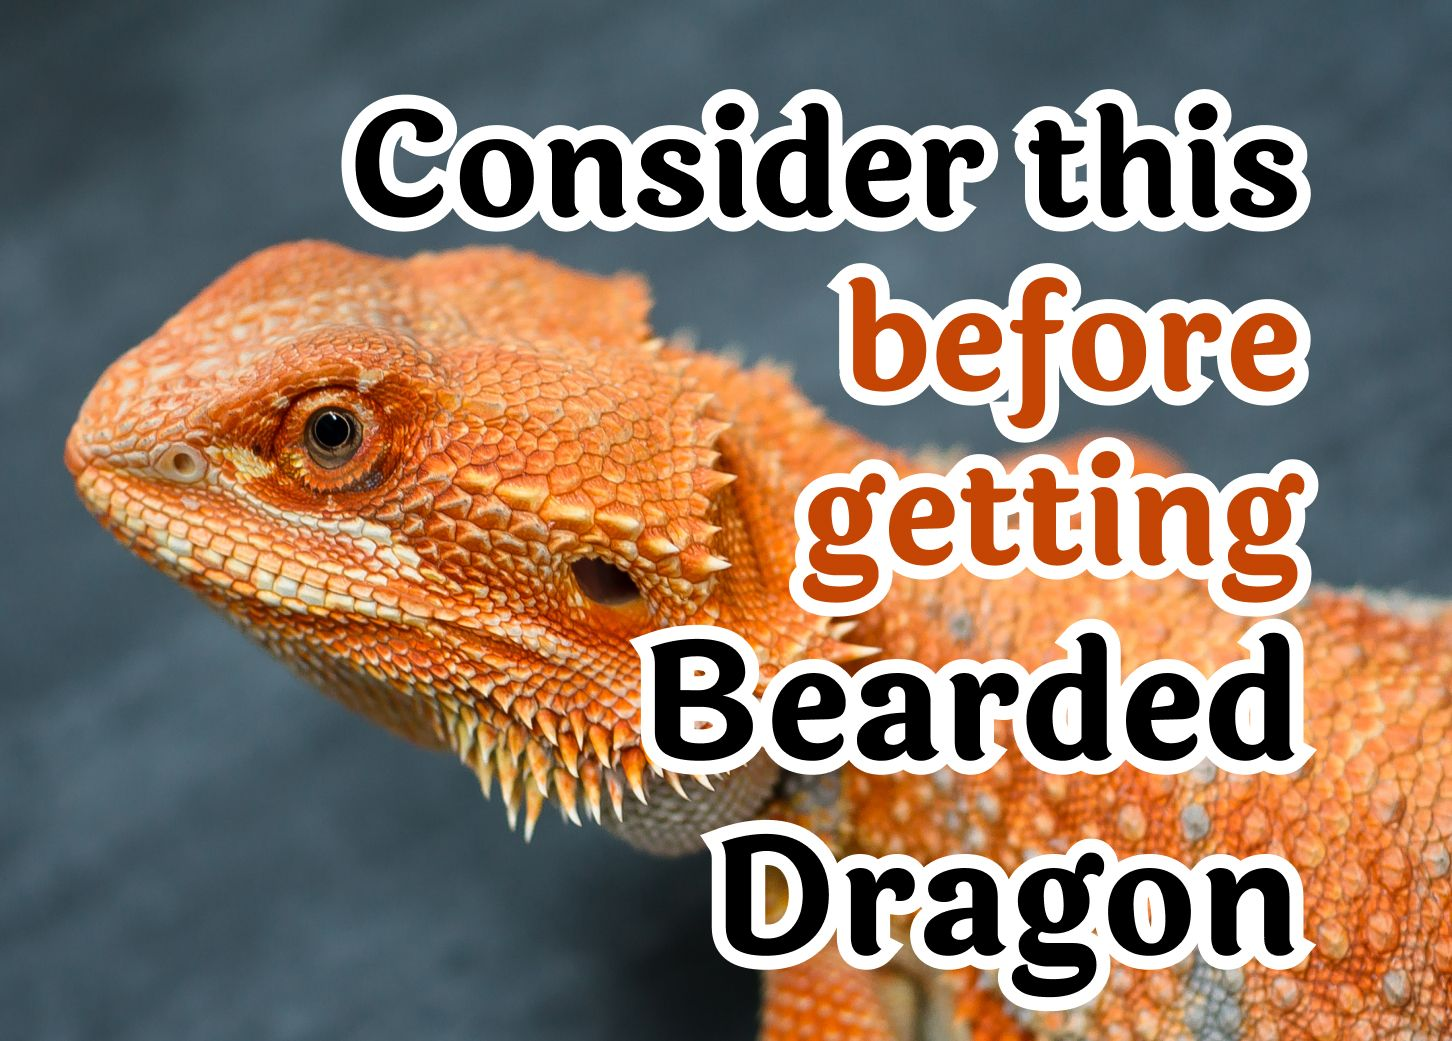 30 Questions Which Should Be Considered Before Getting A Bearded Dragon Pet